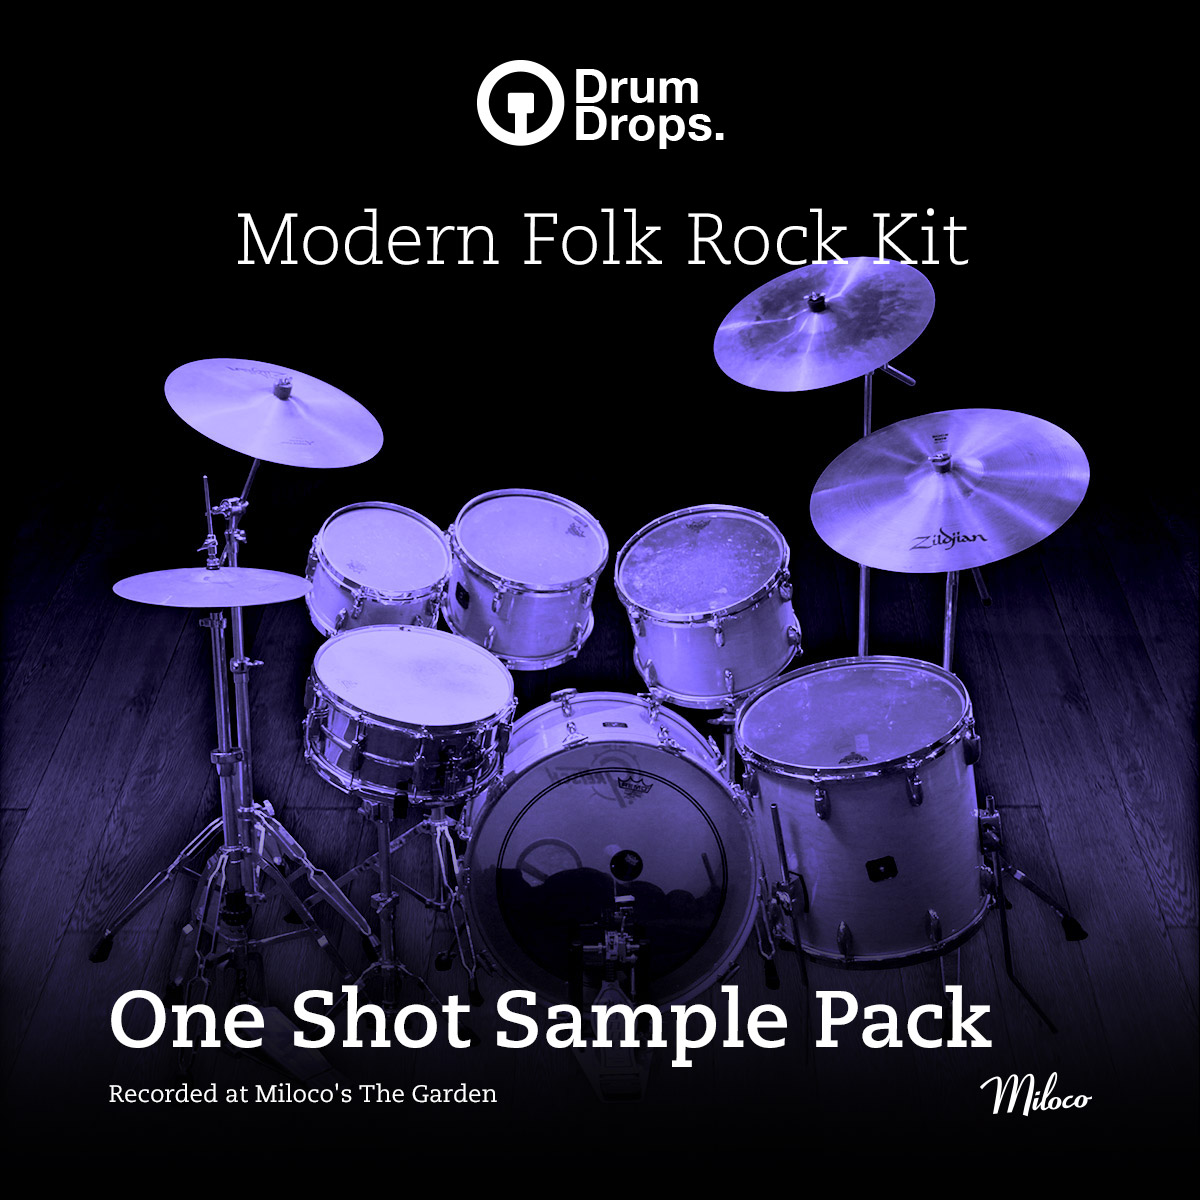 Modern Folk Rock Kit - One Shot Sample Pack